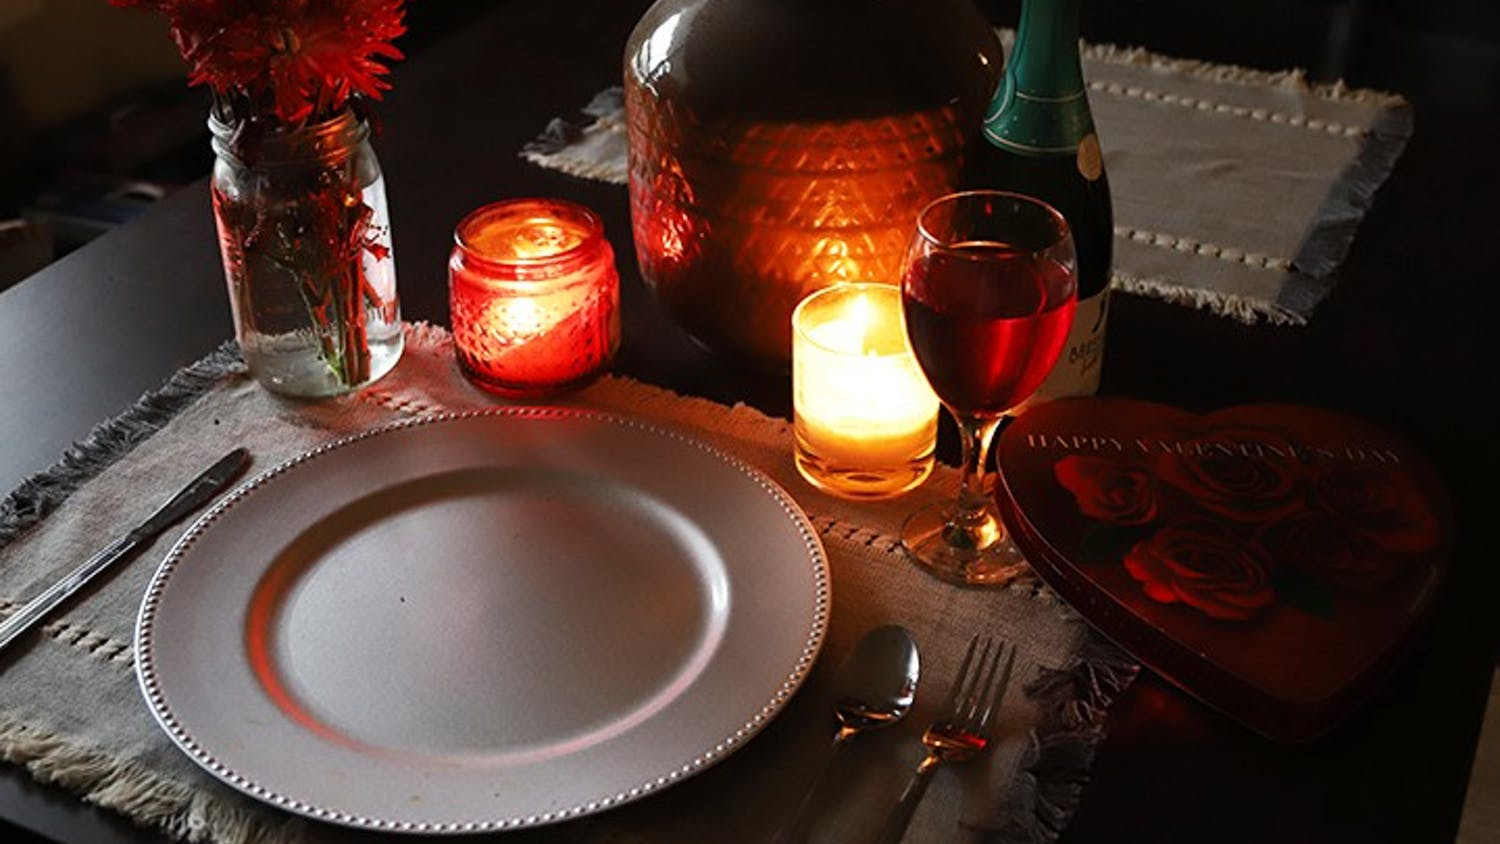 A candle-lit table that is set for one with Valentine's Day paraphernalia surrounding the tableware.